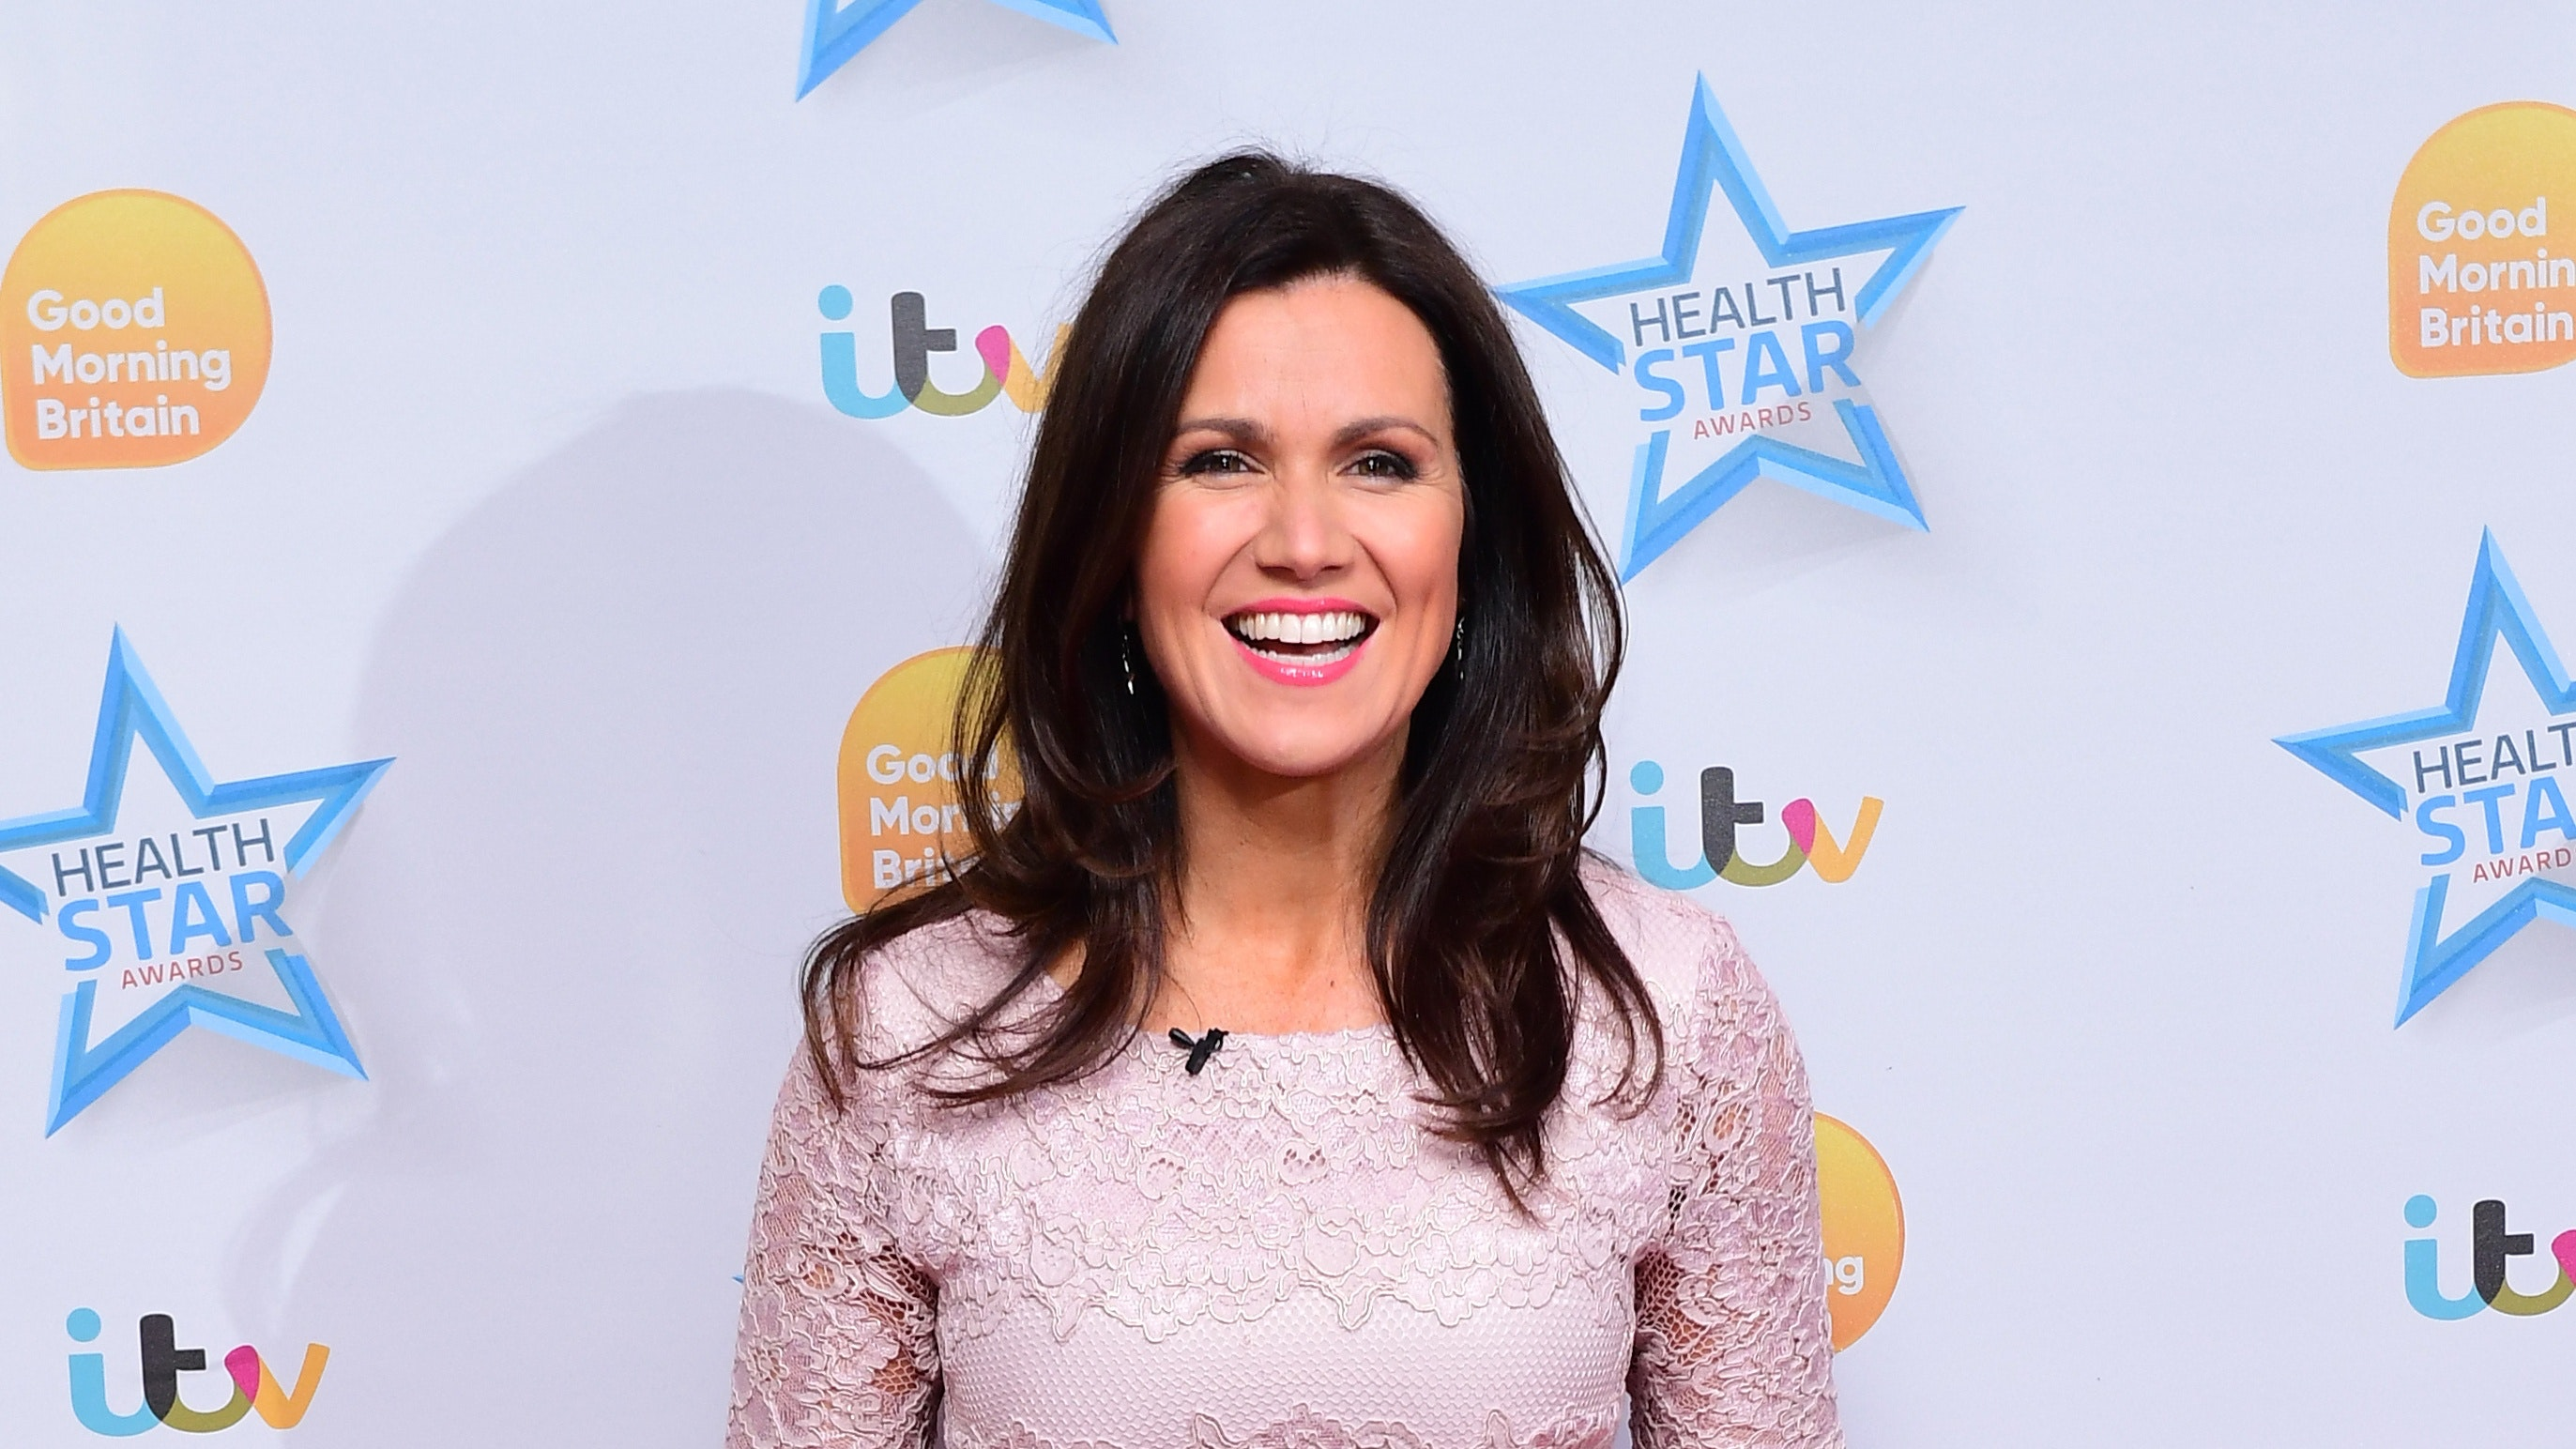 Brave Susanna Reid shares make-up free selfie and without